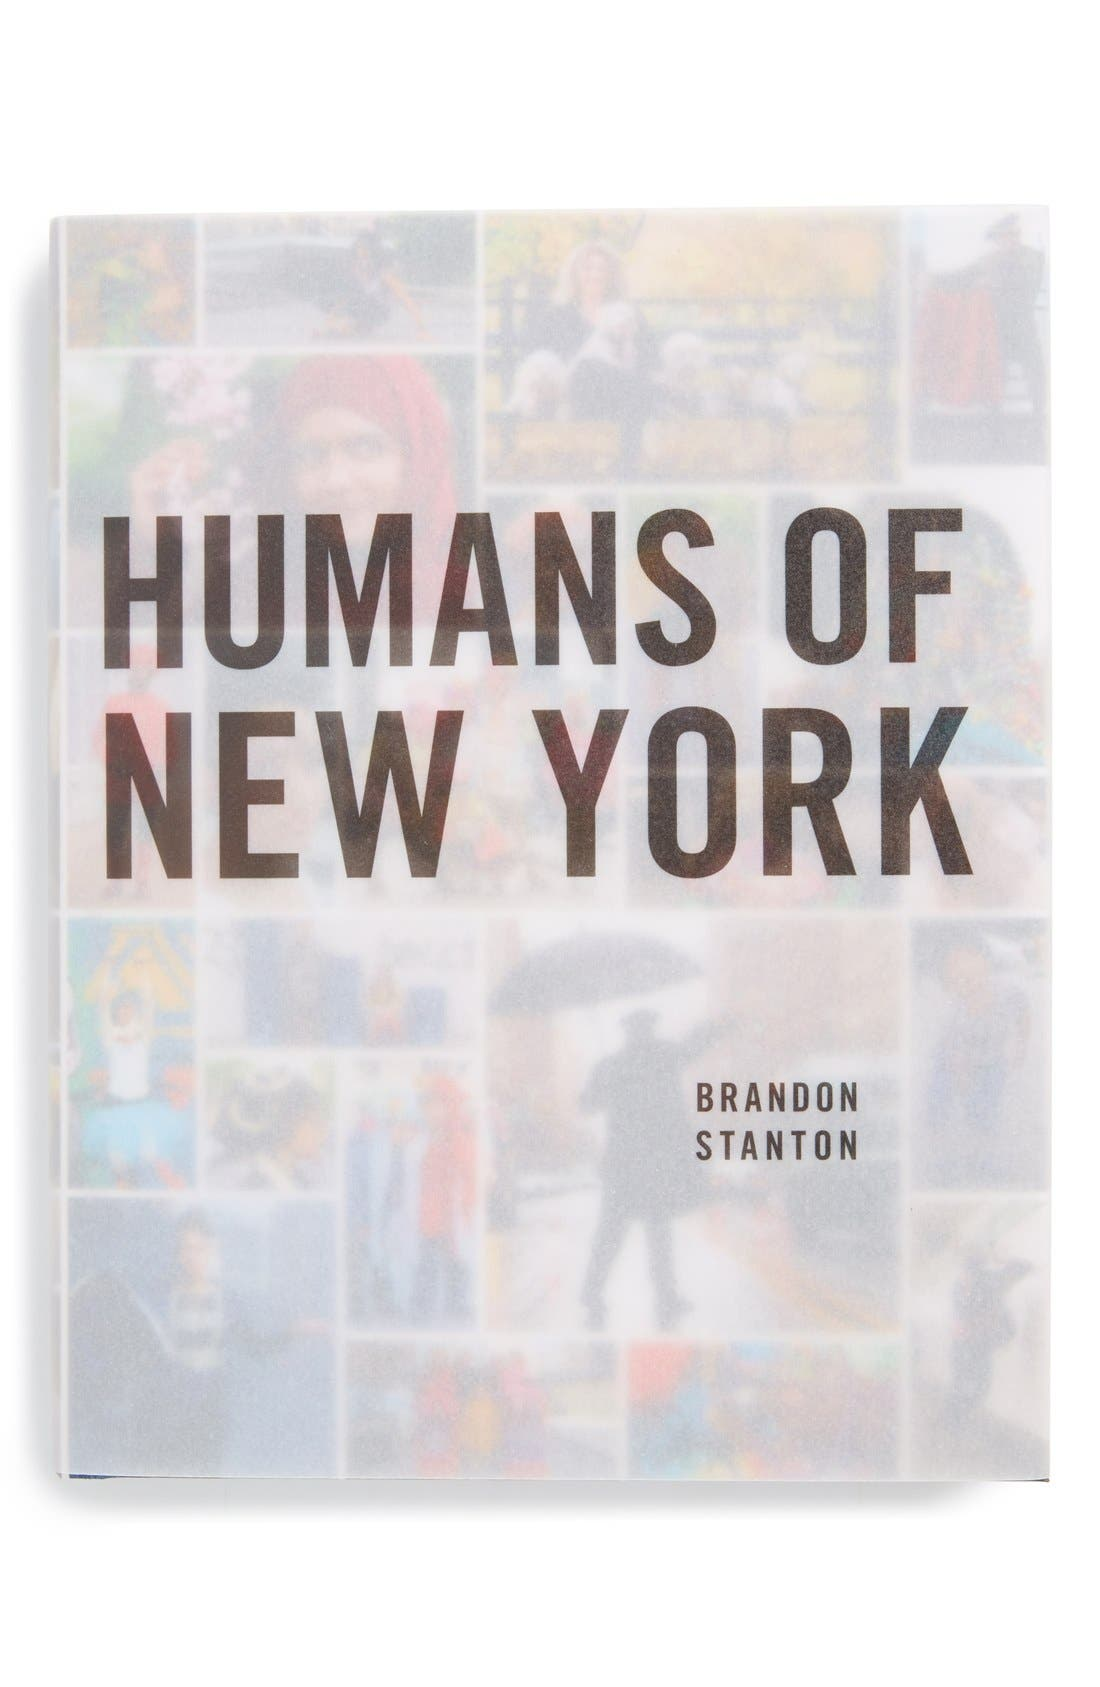 Alternate Image 1 Selected - 'Humans of New York' Book